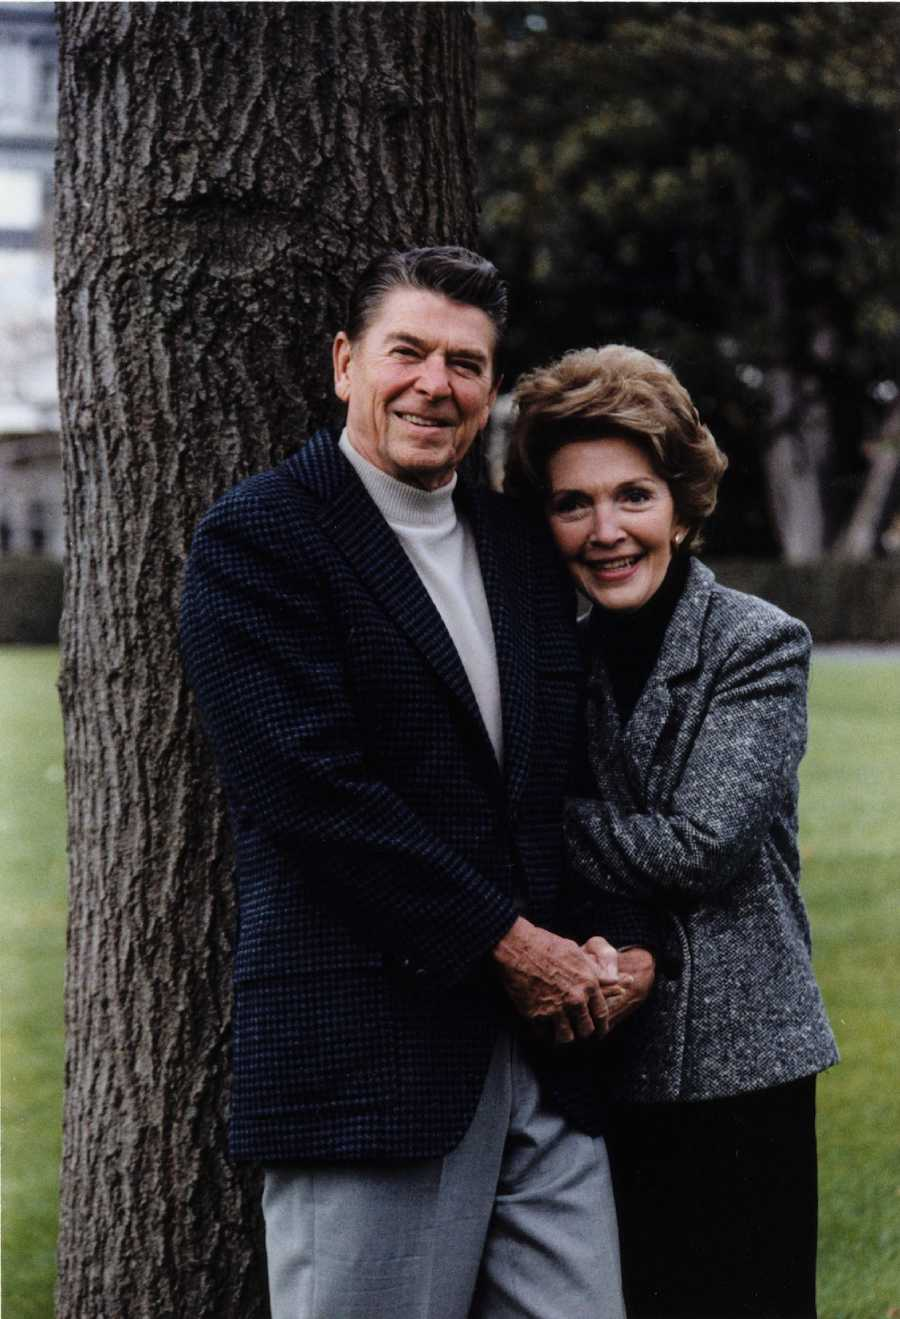 President and First Lady Ronald and Nancy Reagan pose for a casual official portrait on the White House South Lawn (Nov. 22, 1981)